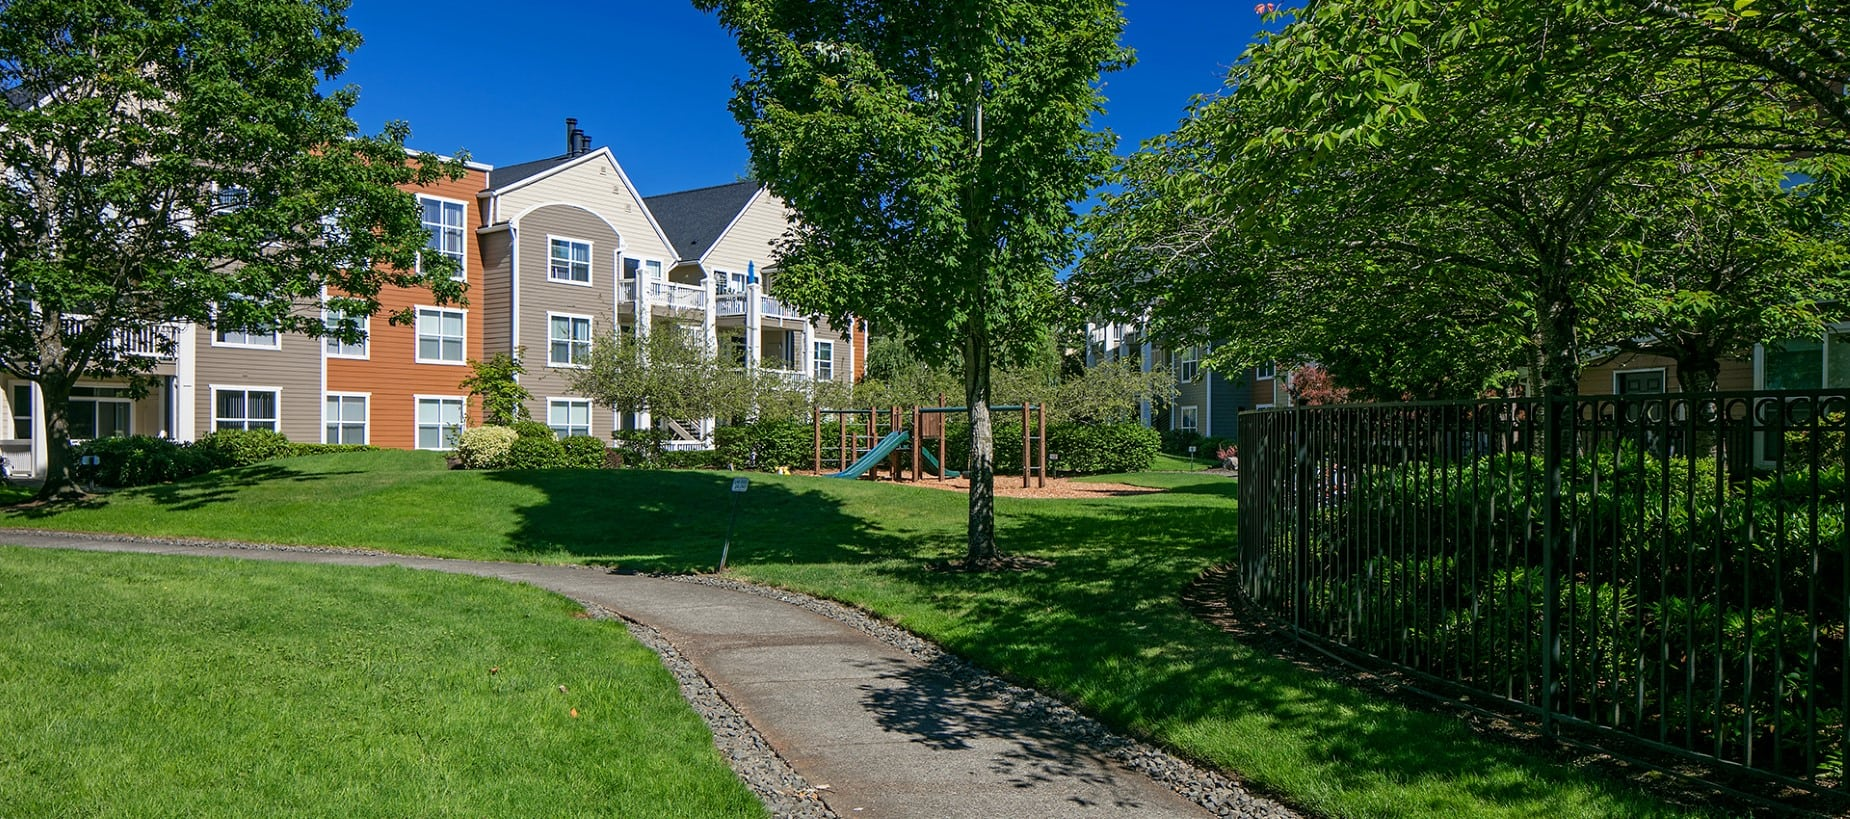 The grounds at Center Pointe Apartment Homes in Beaverton, Oregon